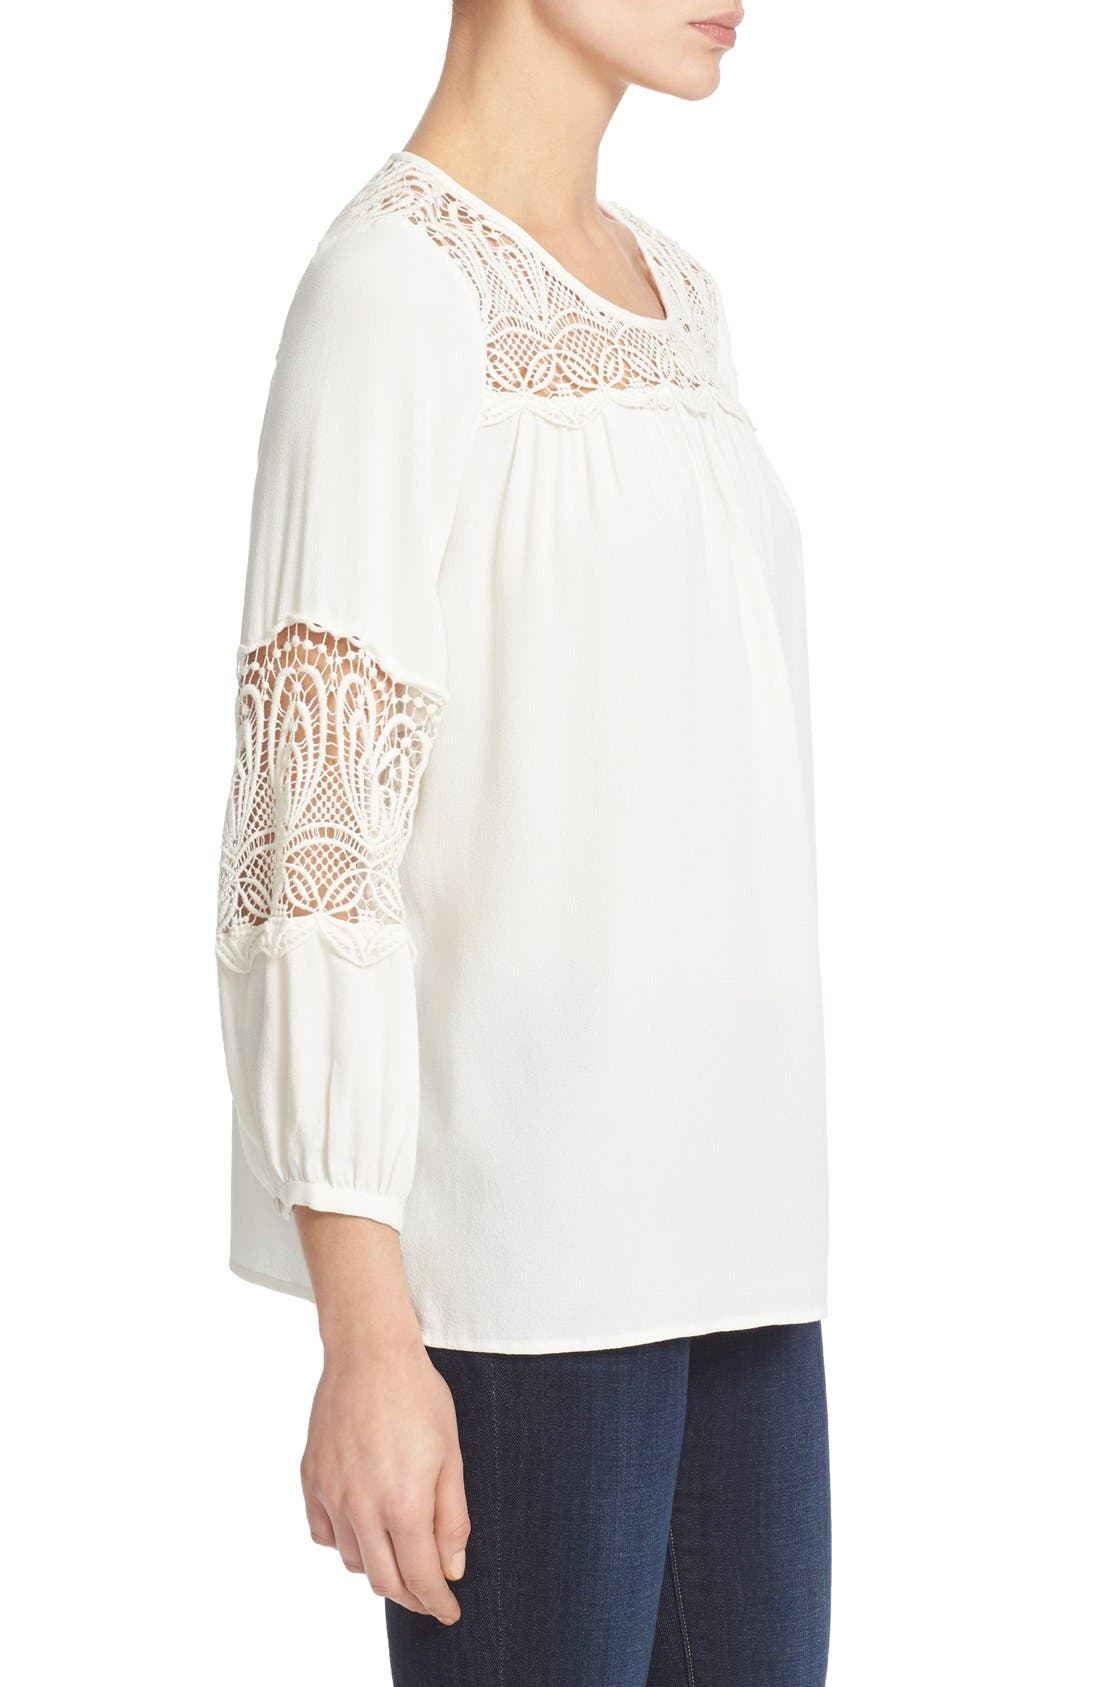 Alternate Image 3  - Joie 'Coastal' Lace Inset Blouse